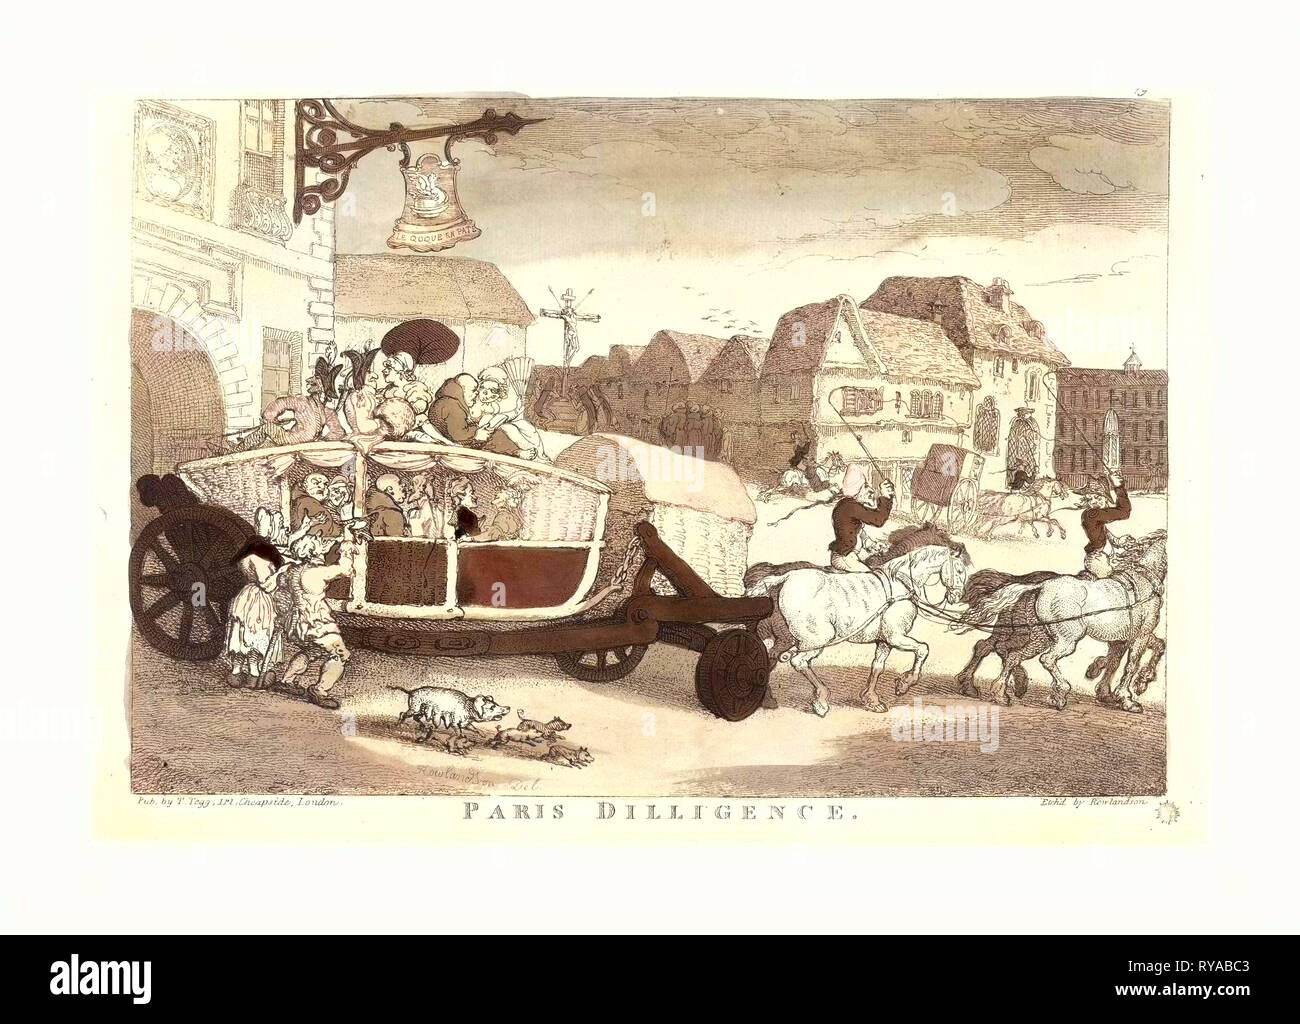 Thomas Rowlandson (British, 1756  1827 ), Paris Diligence, Probably 1810, Hand Colored Etching - Stock Image